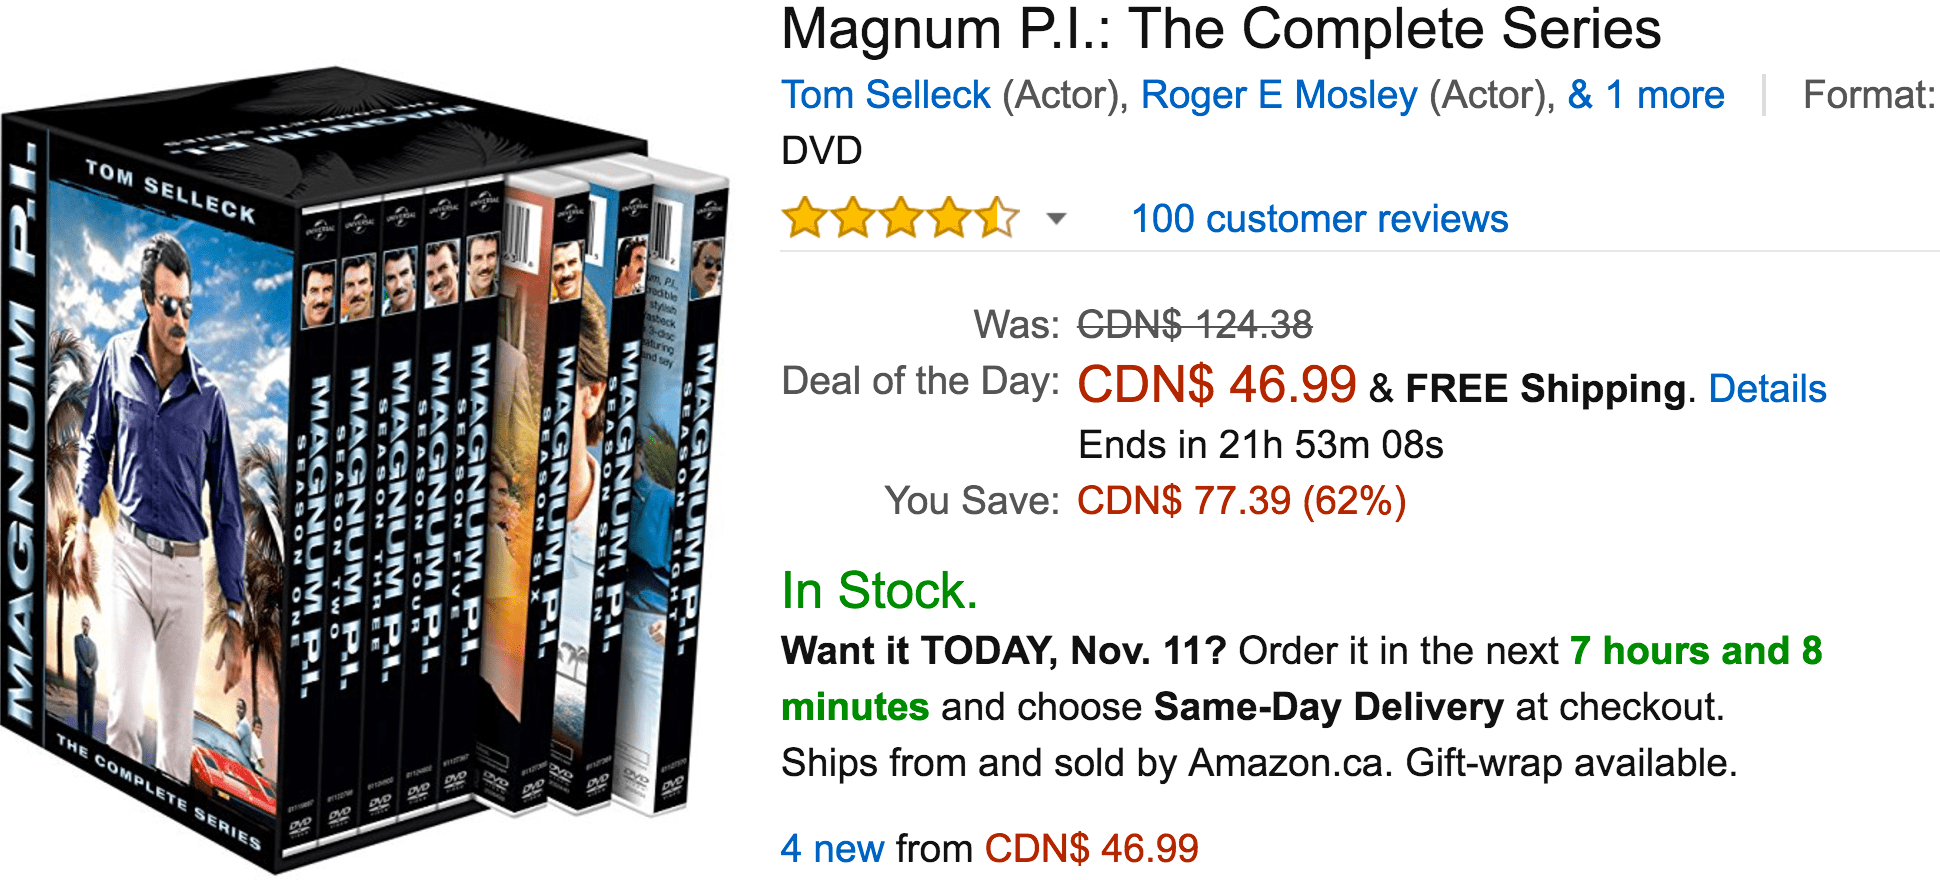 Amazon Canada Black Friday Today's Deals: Save 62% On Magnum P.I.: The Complete Series, 35% on Bissell Little Green Proheat Portable Deep Cleaner & More Offers